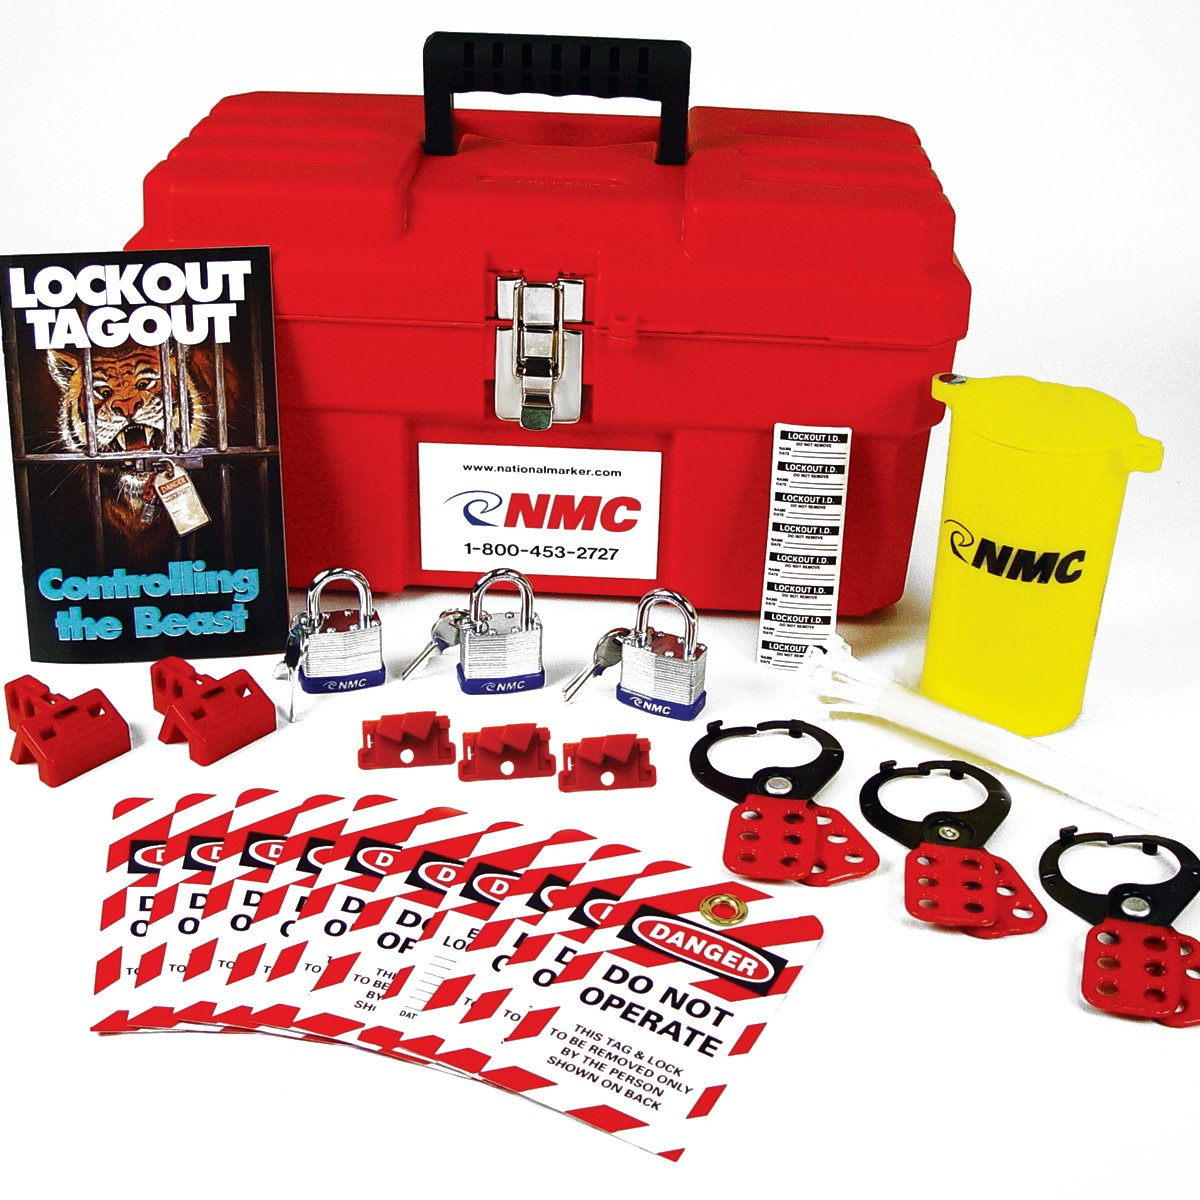 UltraSource 11 Piece Electrical Lockout Kit, Rugged Plastic Case